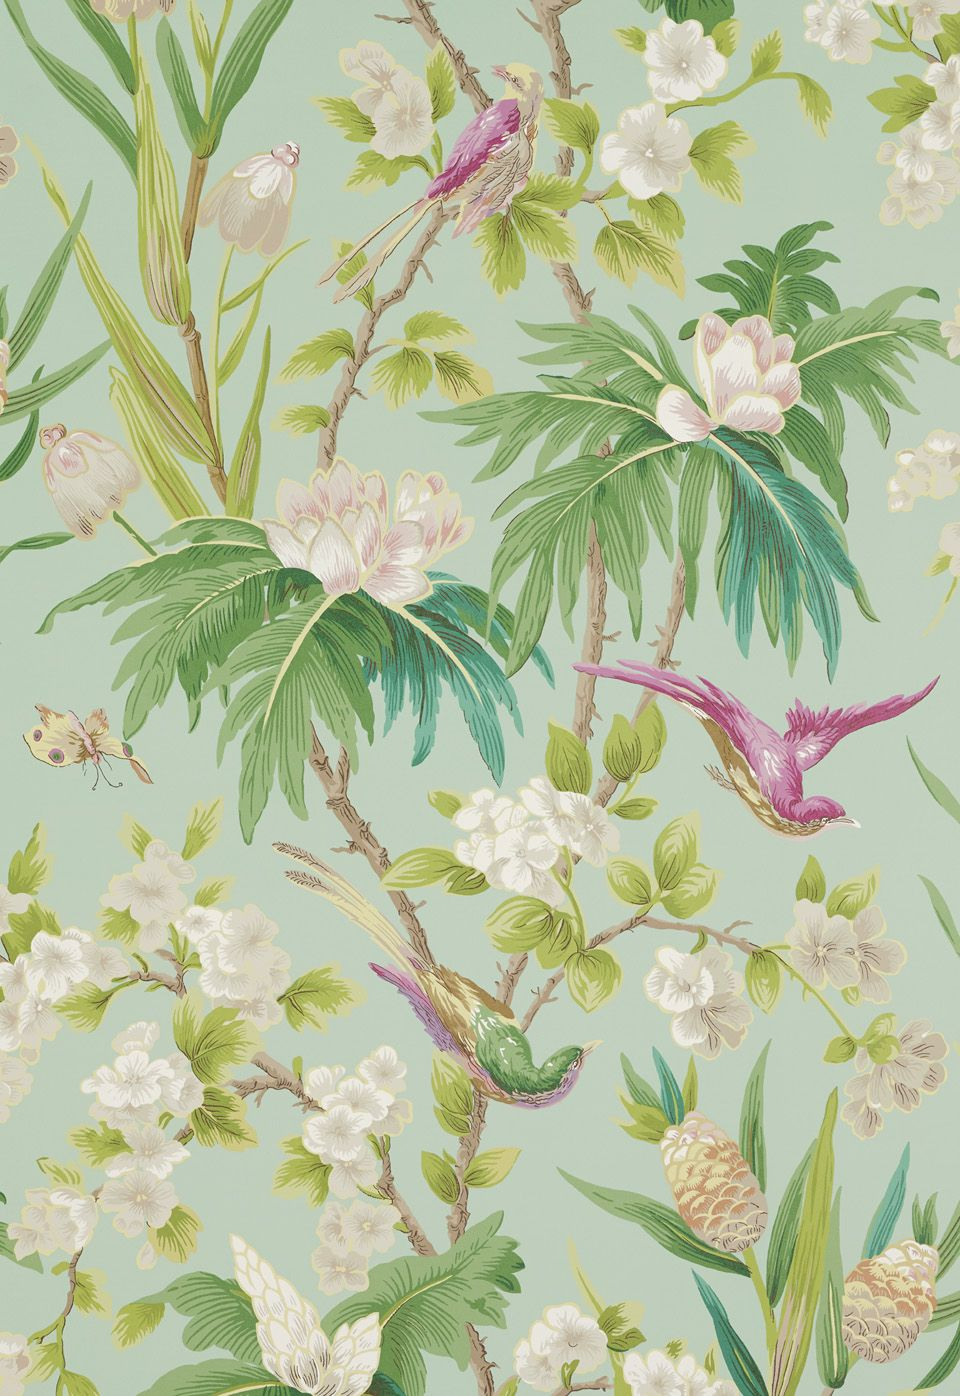 Wallcovering / Wallpaper | Seychelles in Sea | Schumacher shop ...